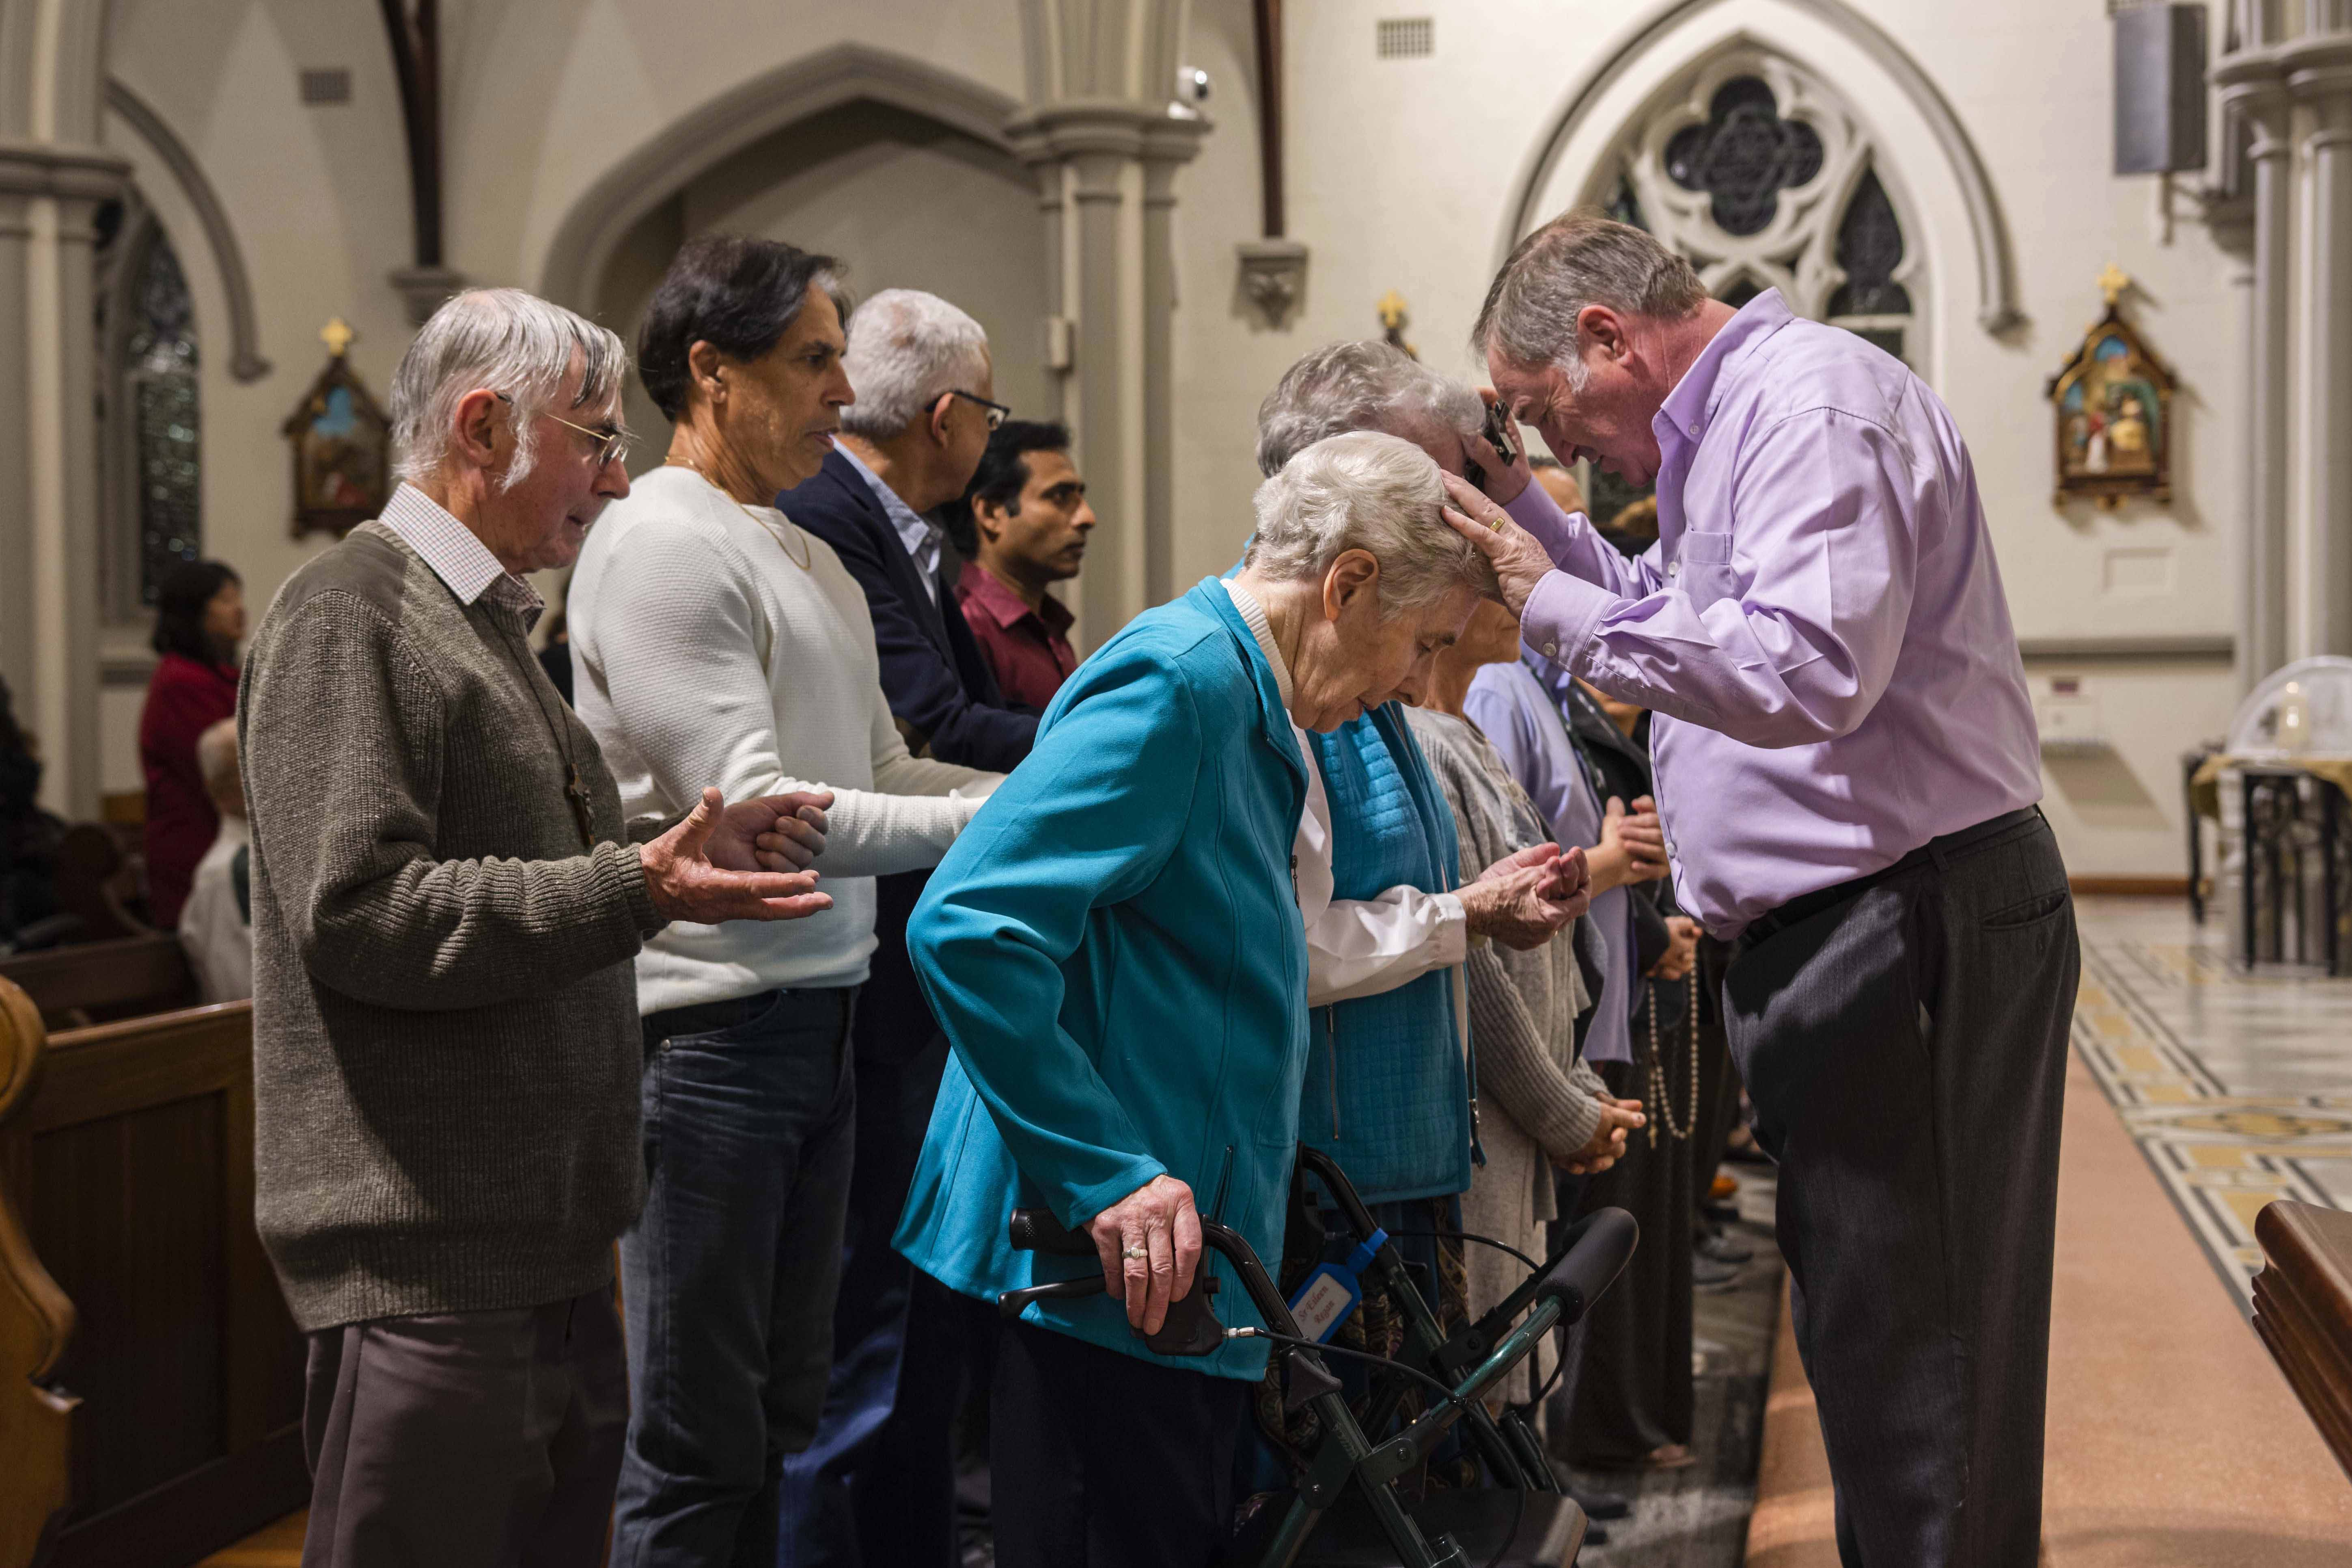 Parishioners of St Joseph's Subiaco gather to have Alan lay hands on them in prayer for healing. Photo: Eric Martin.